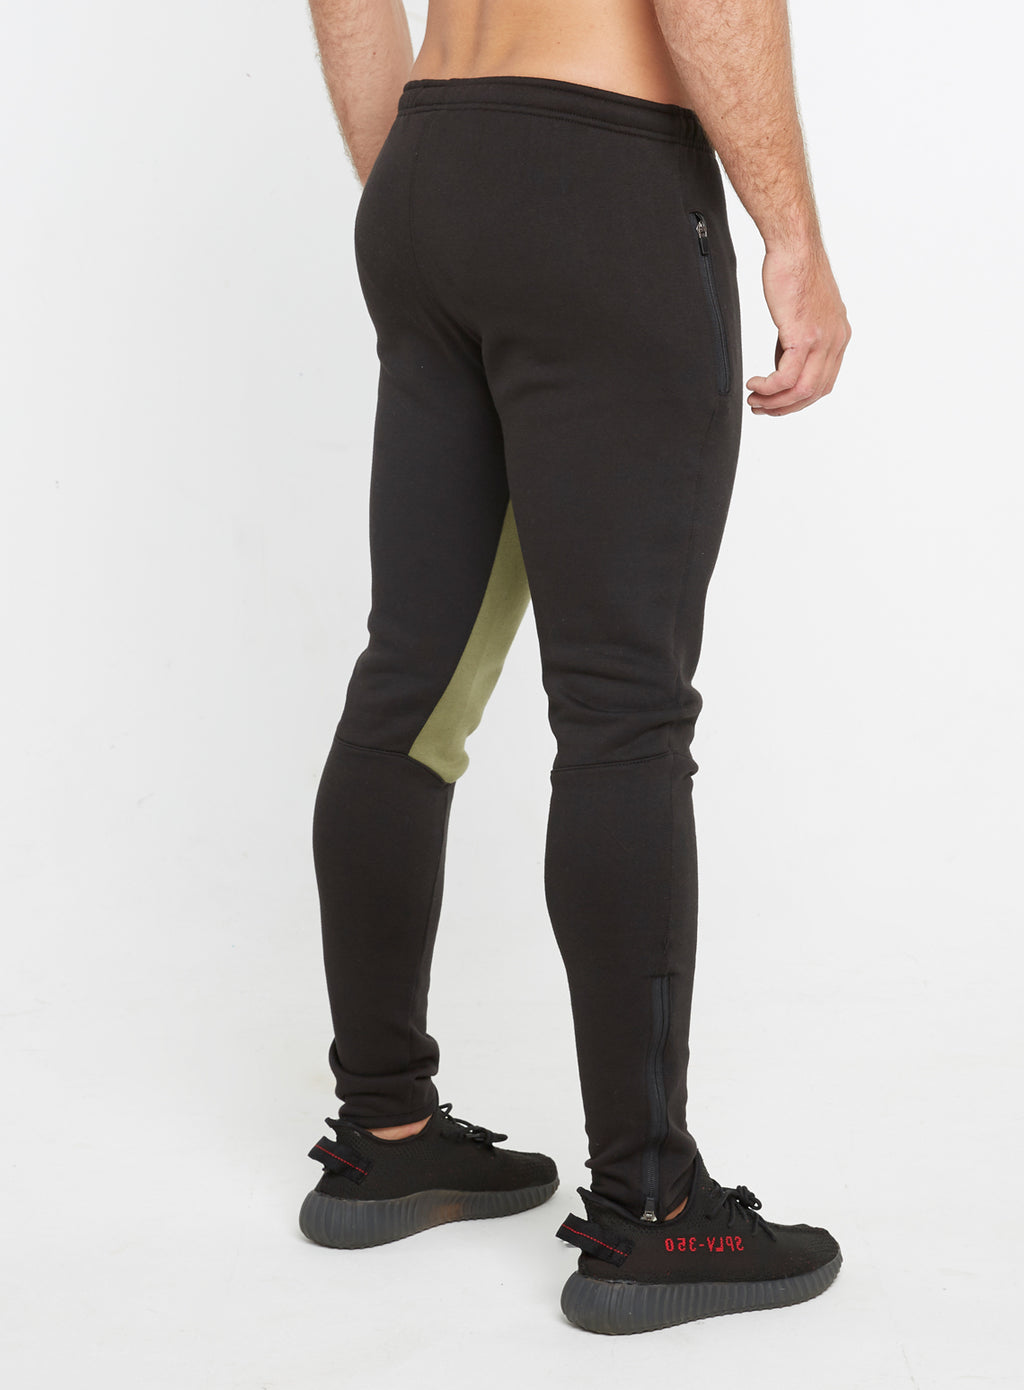 Gym Monkee - Black and Khaki Joggers REAR RIGHT